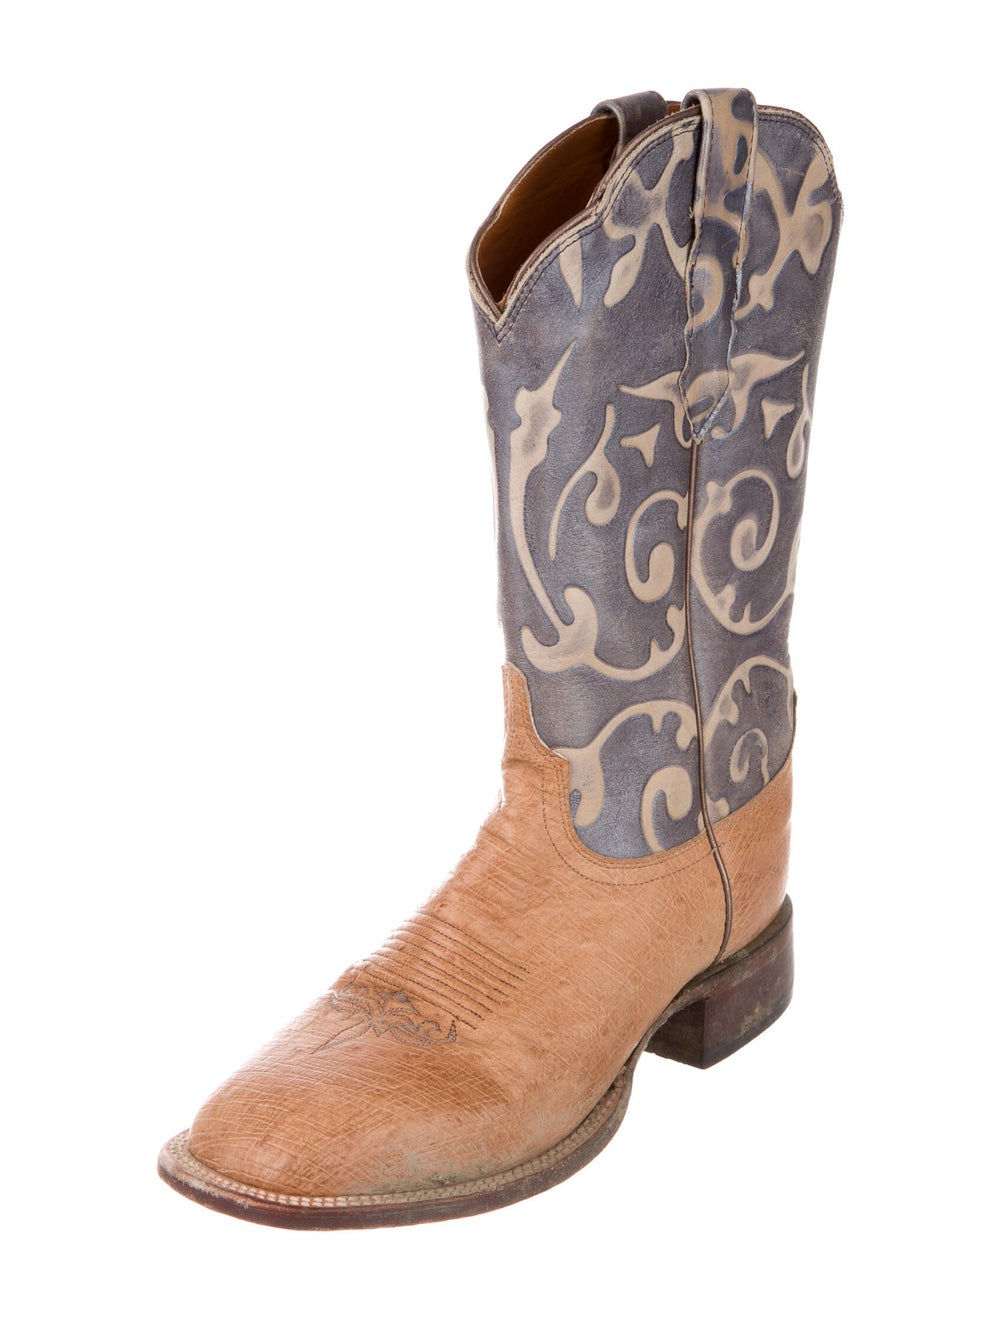 Lucchese Eel Skin Printed Western Boots - image 2